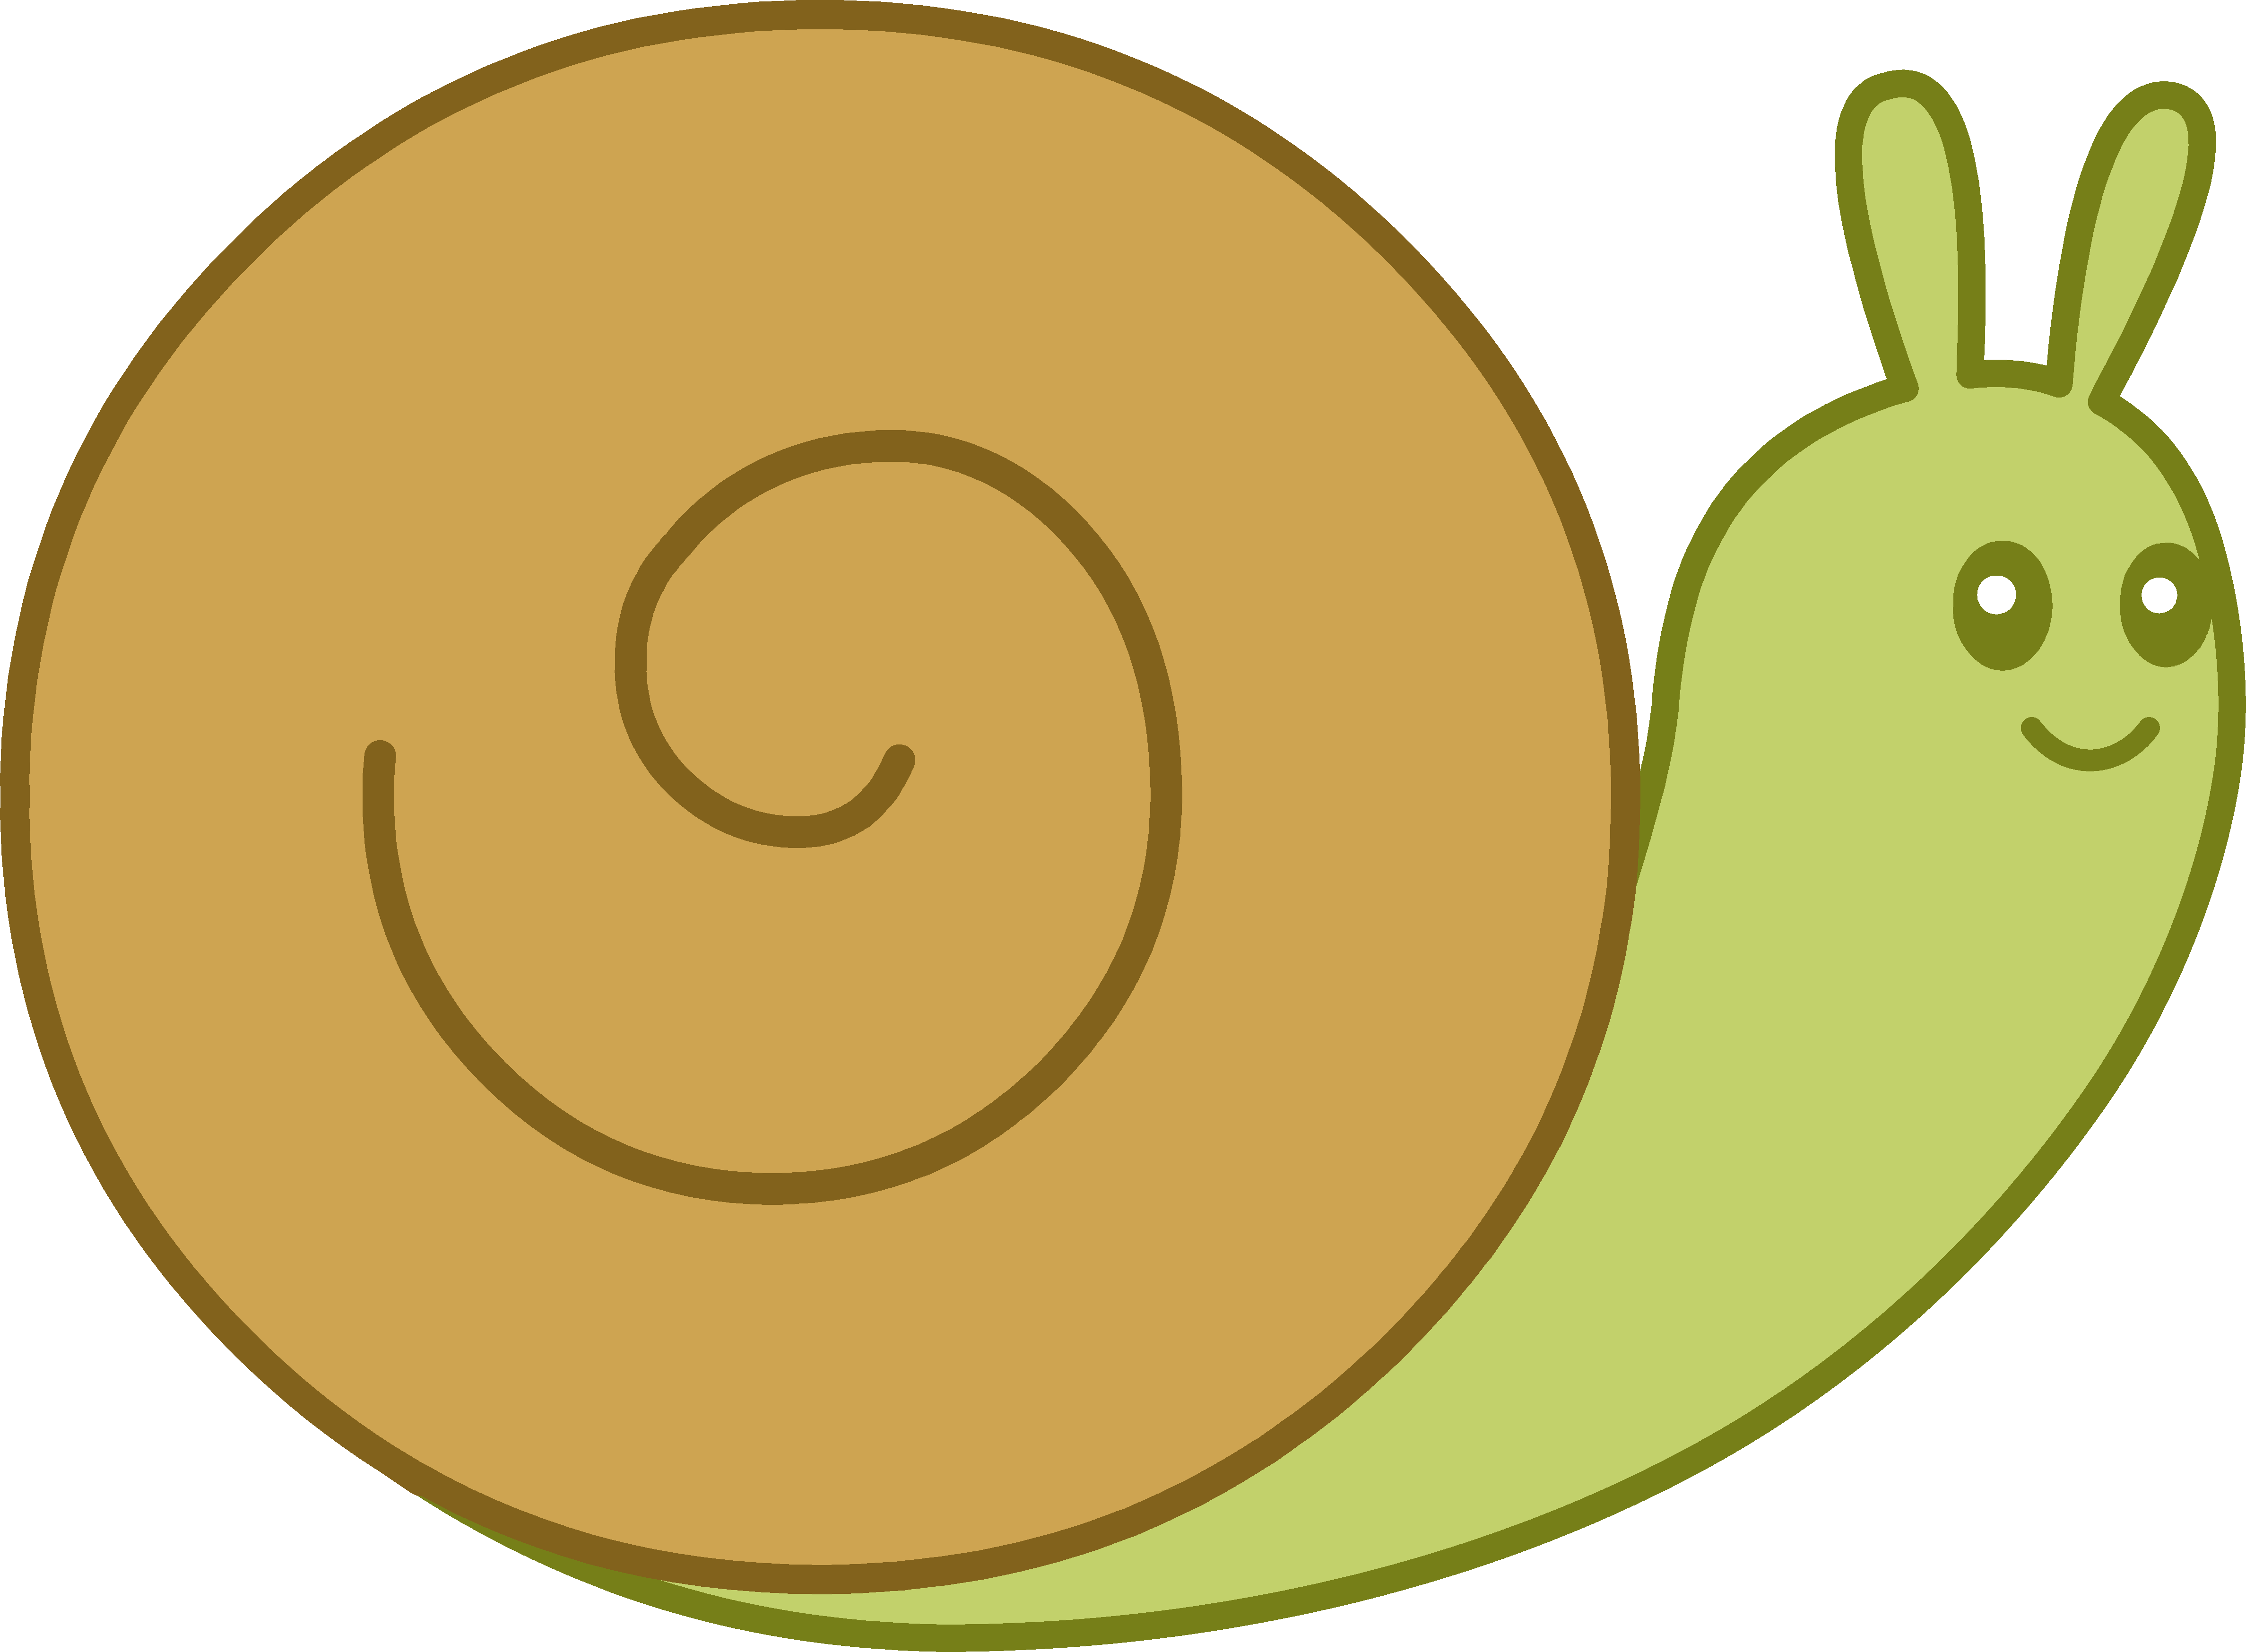 Cute Brown and Green Snail - Free Clip Art